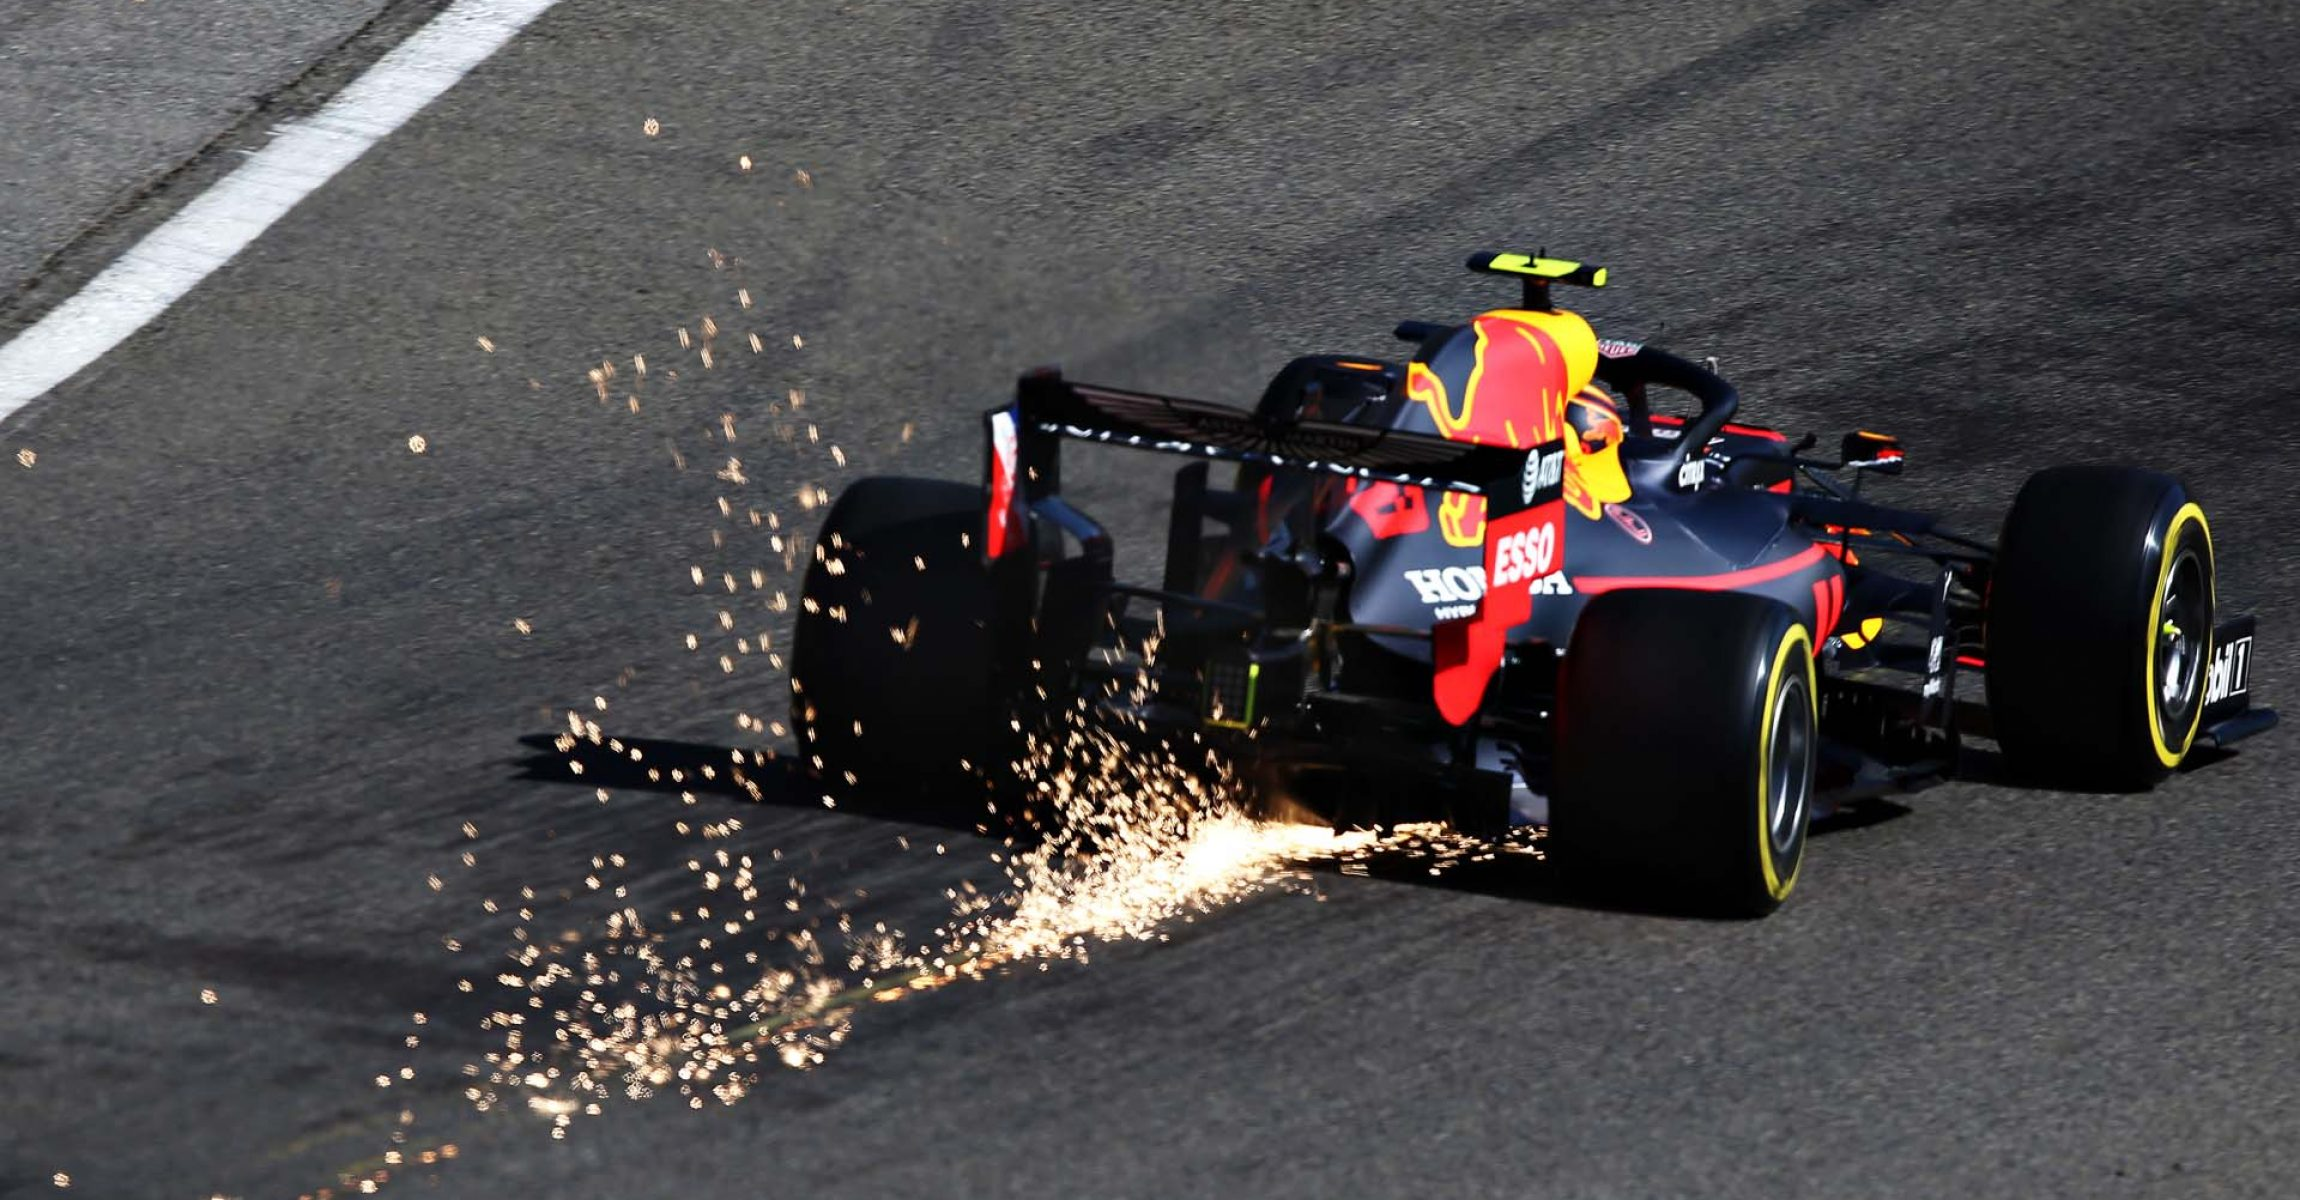 SPA, BELGIUM - AUGUST 30: Sparks fly behind Alexander Albon of Thailand driving the (23) Aston Martin Red Bull Racing RB15 on track during practice for the F1 Grand Prix of Belgium at Circuit de Spa-Francorchamps on August 30, 2019 in Spa, Belgium. (Photo by Charles Coates/Getty Images) // Getty Images / Red Bull Content Pool  // AP-21DWD4T5S2111 // Usage for editorial use only //